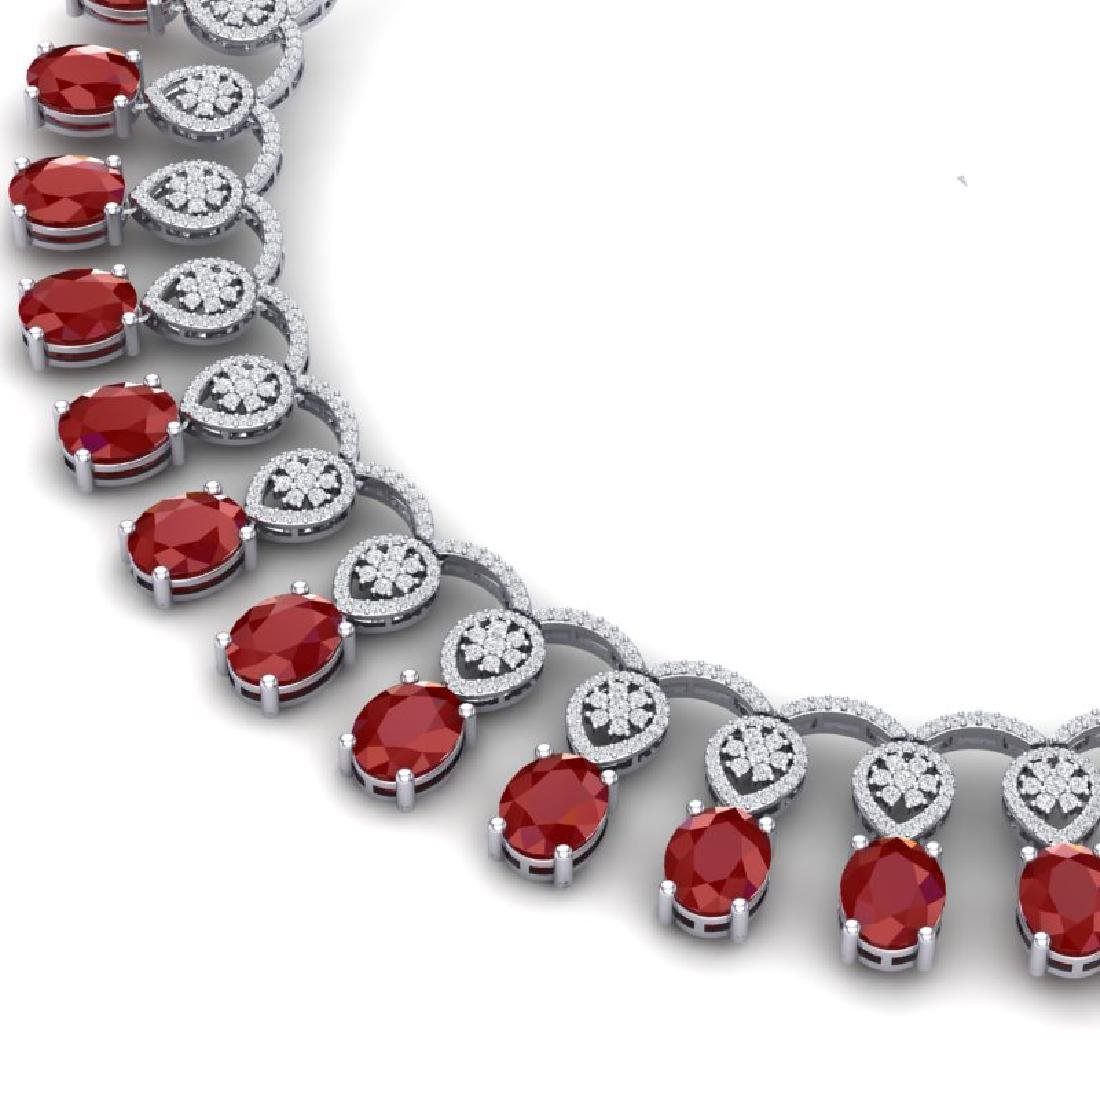 54.05 CTW Royalty Ruby & VS Diamond Necklace 18K White - 2